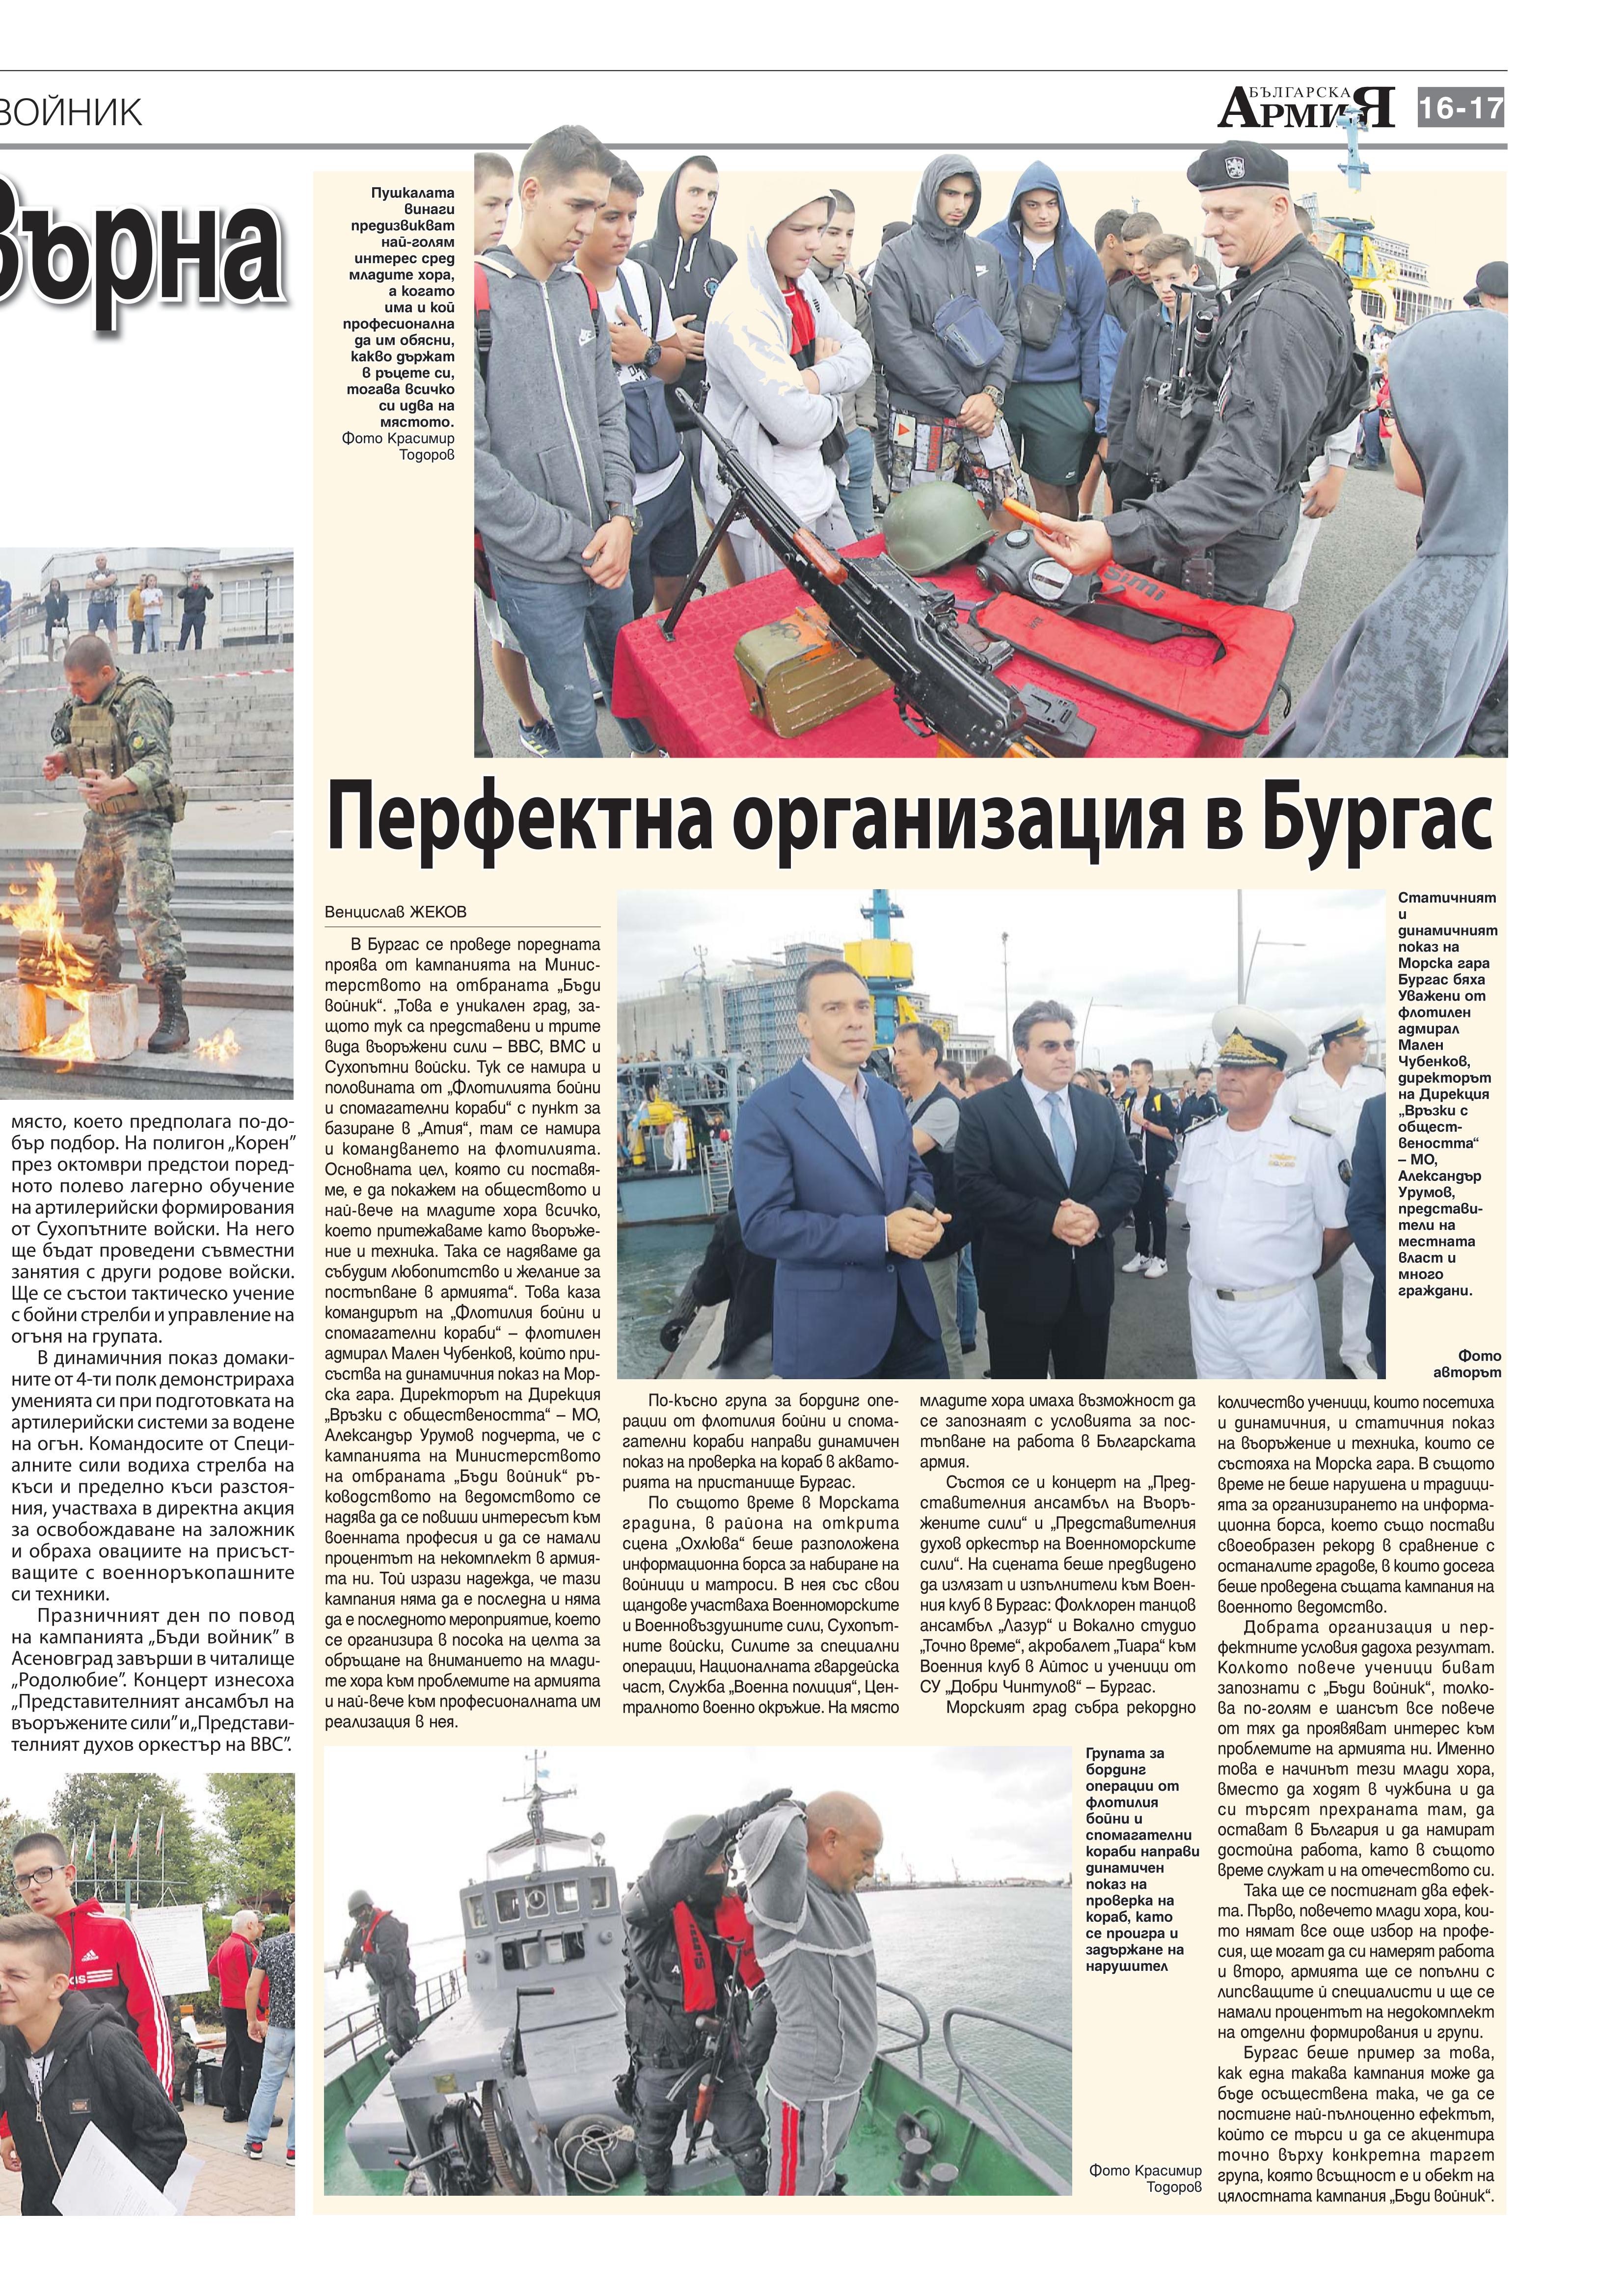 https://armymedia.bg/wp-content/uploads/2015/06/17.page1_-110.jpg